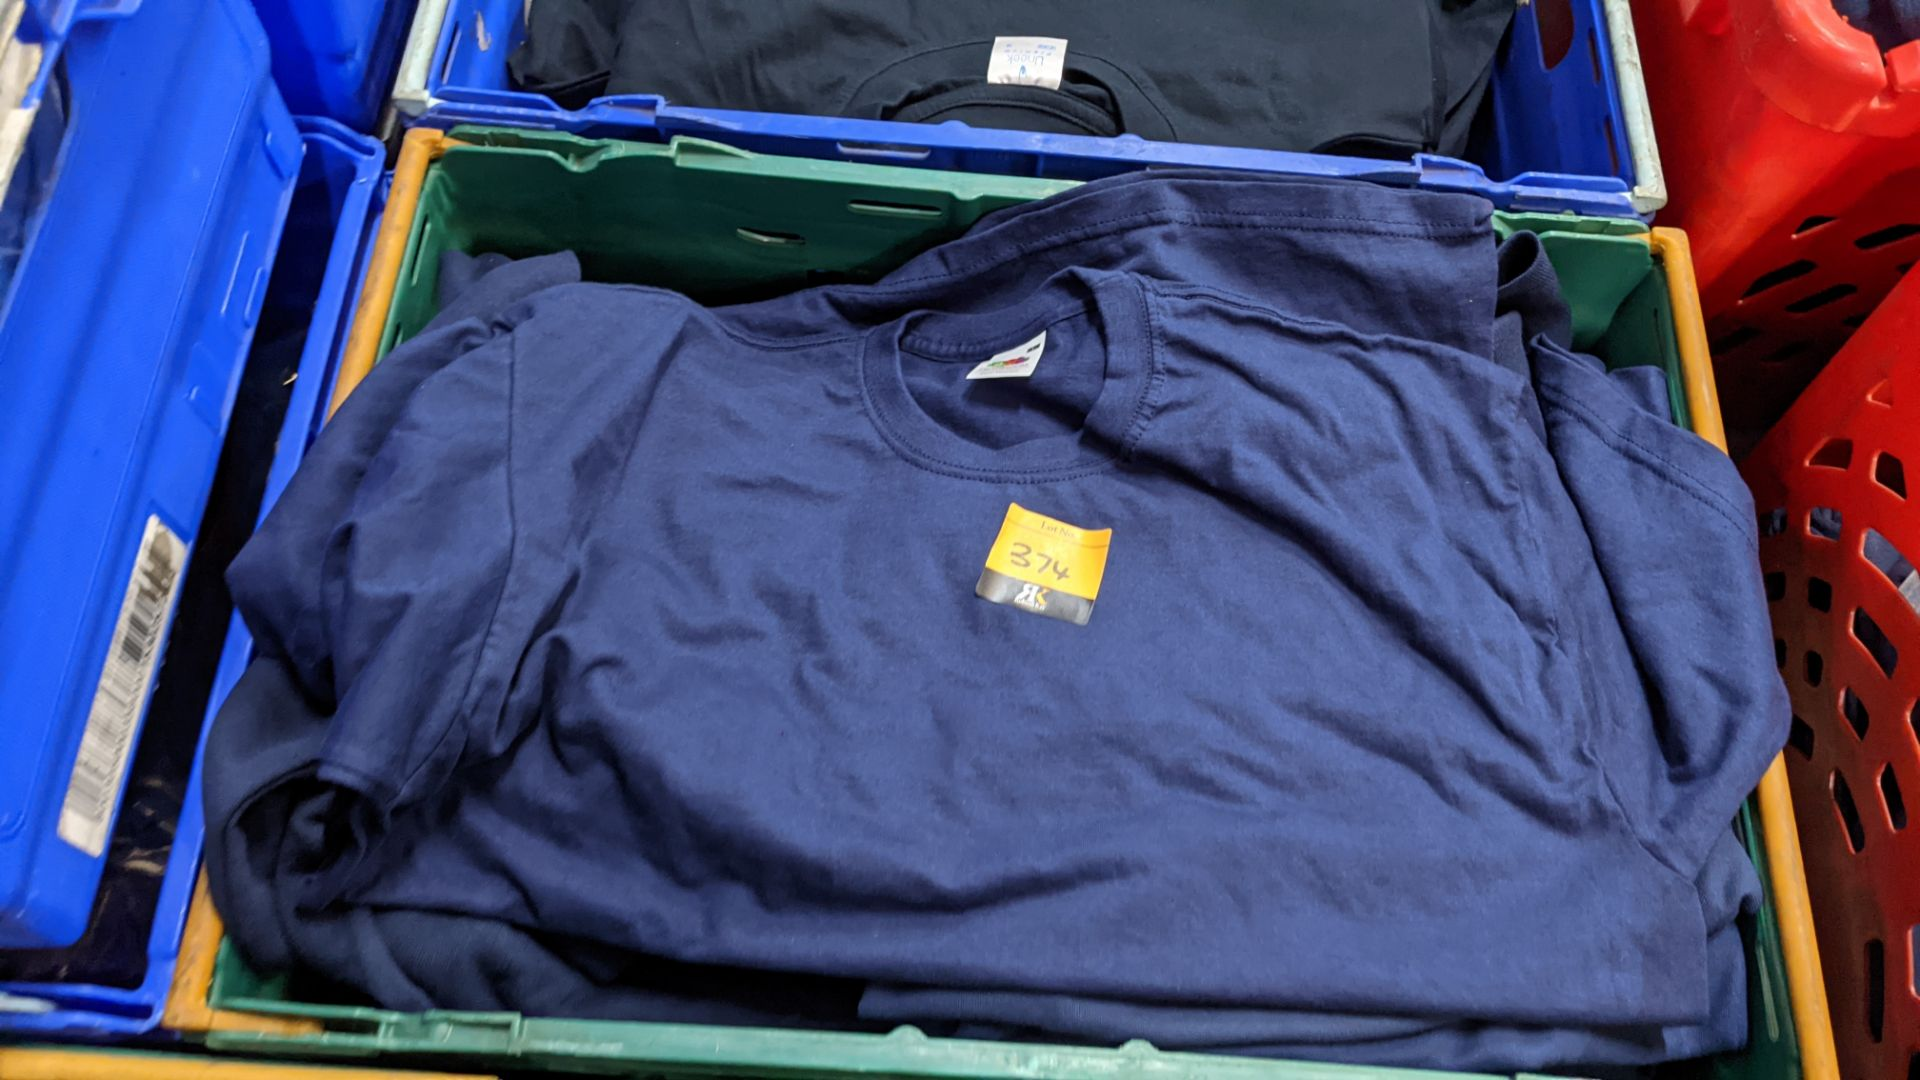 Approx 20 off assorted blue Fruit of the Loom tops comprising sweatshirts, polo shirts & t-shirts - Image 3 of 4